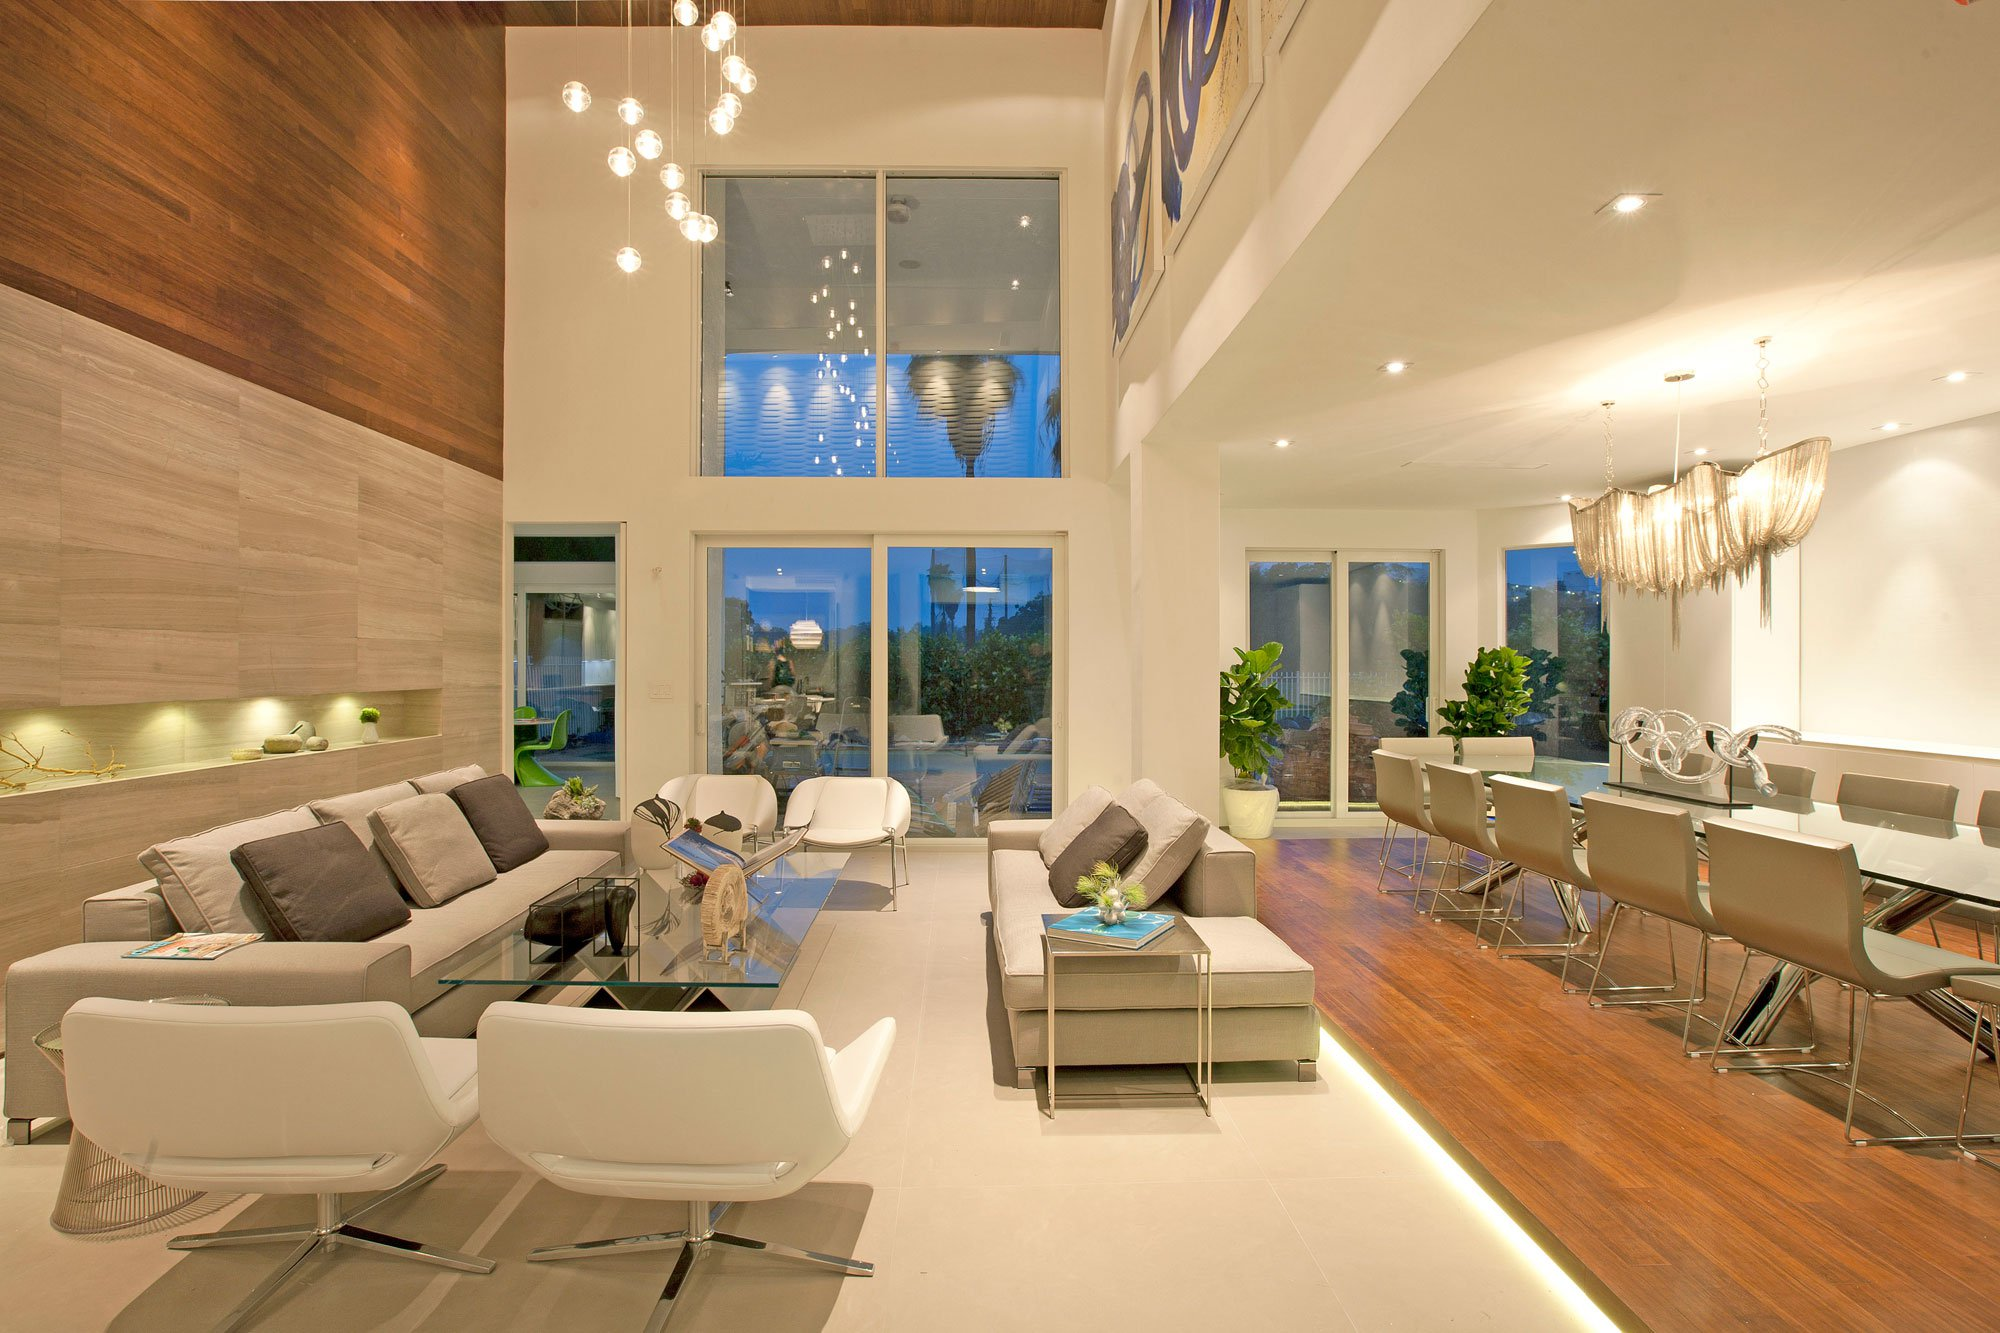 Miami Modern Home By DKOR Interiors. Home Design